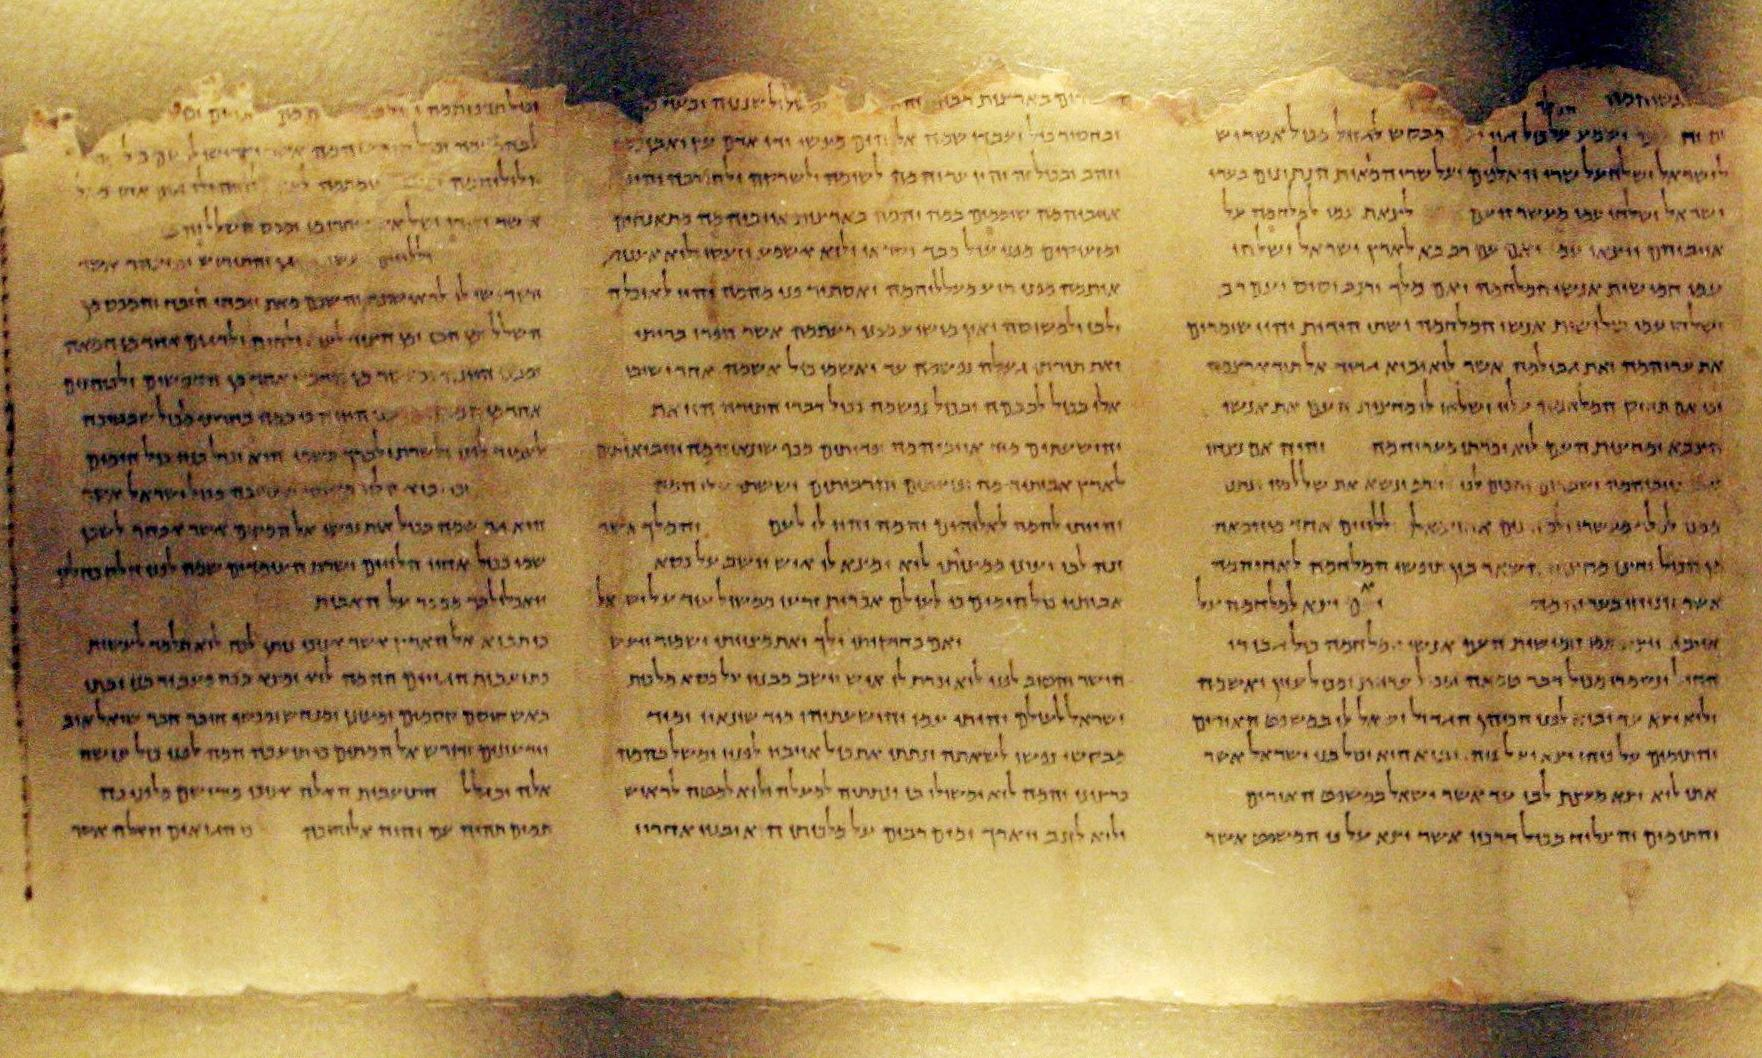 Dead Sea scrolls study raises new questions over texts' origins